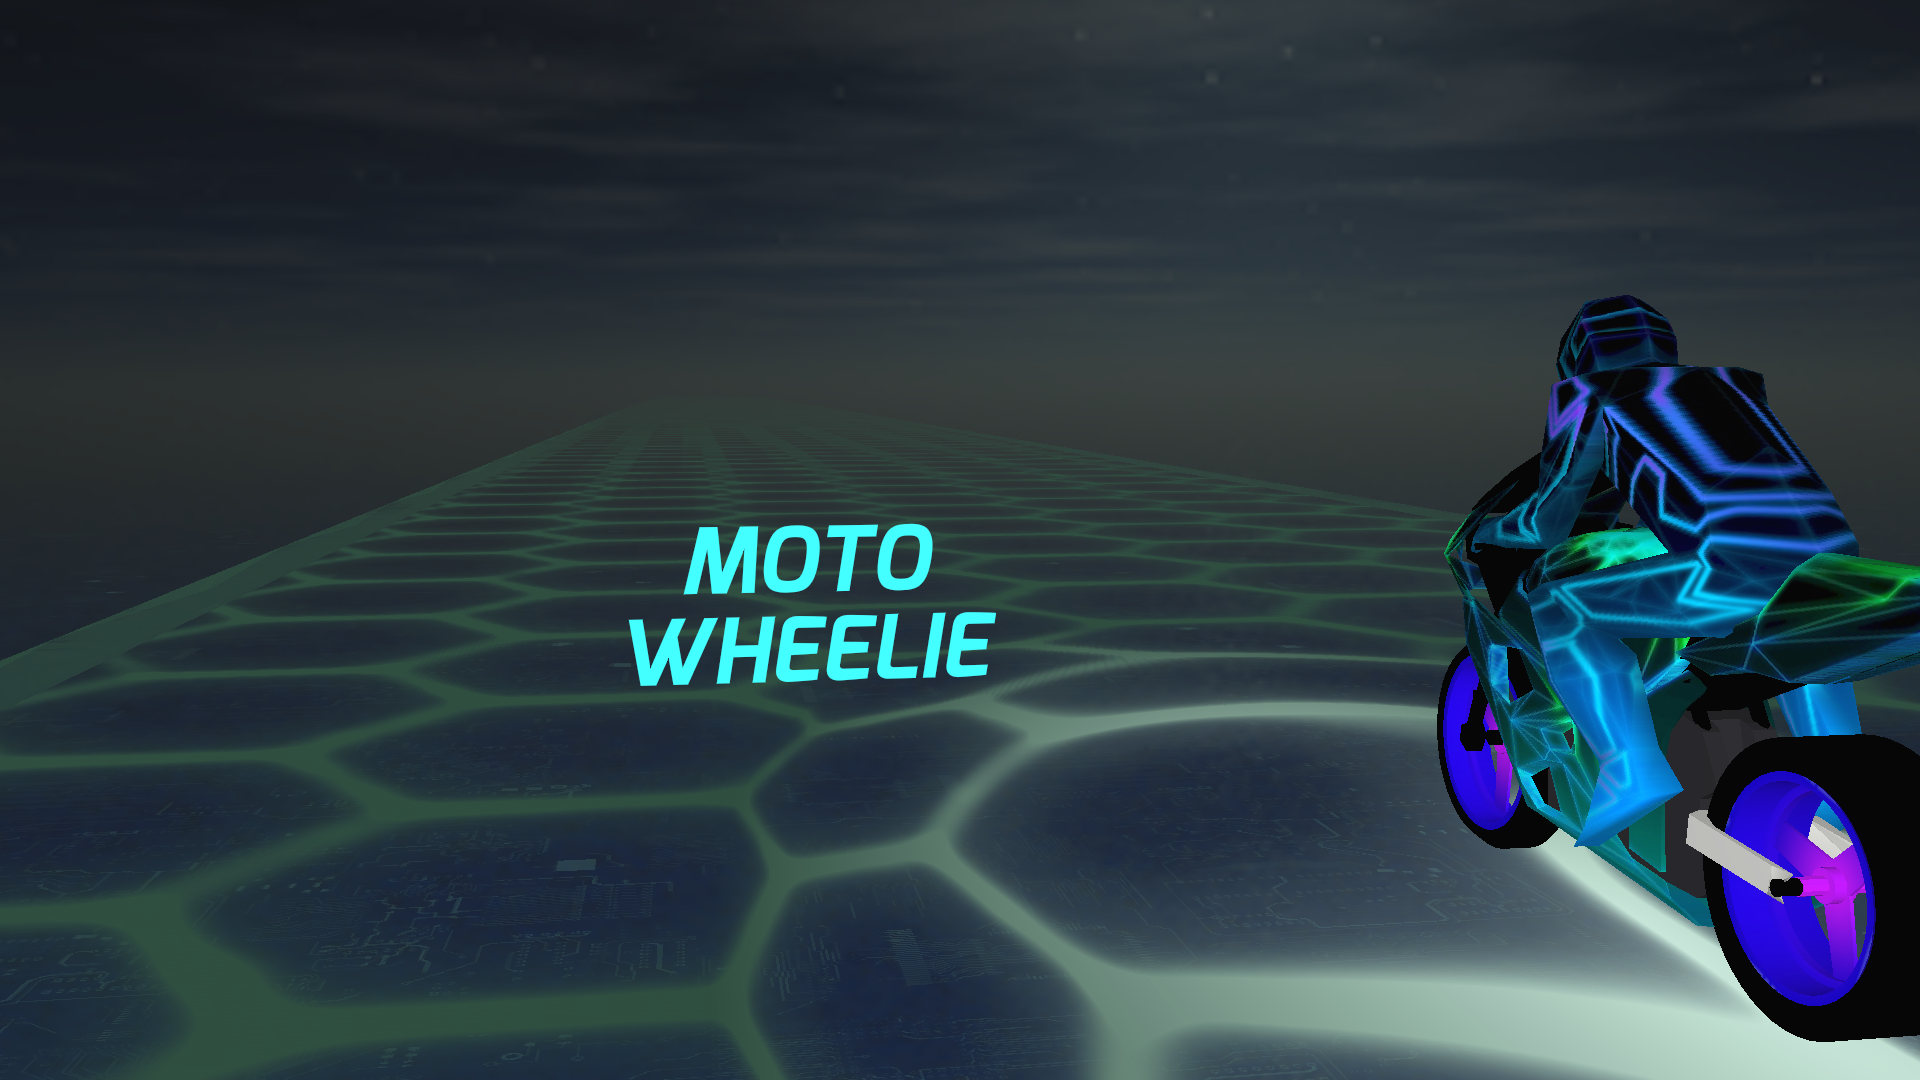 Moto Wheelie Premium screenshot 11